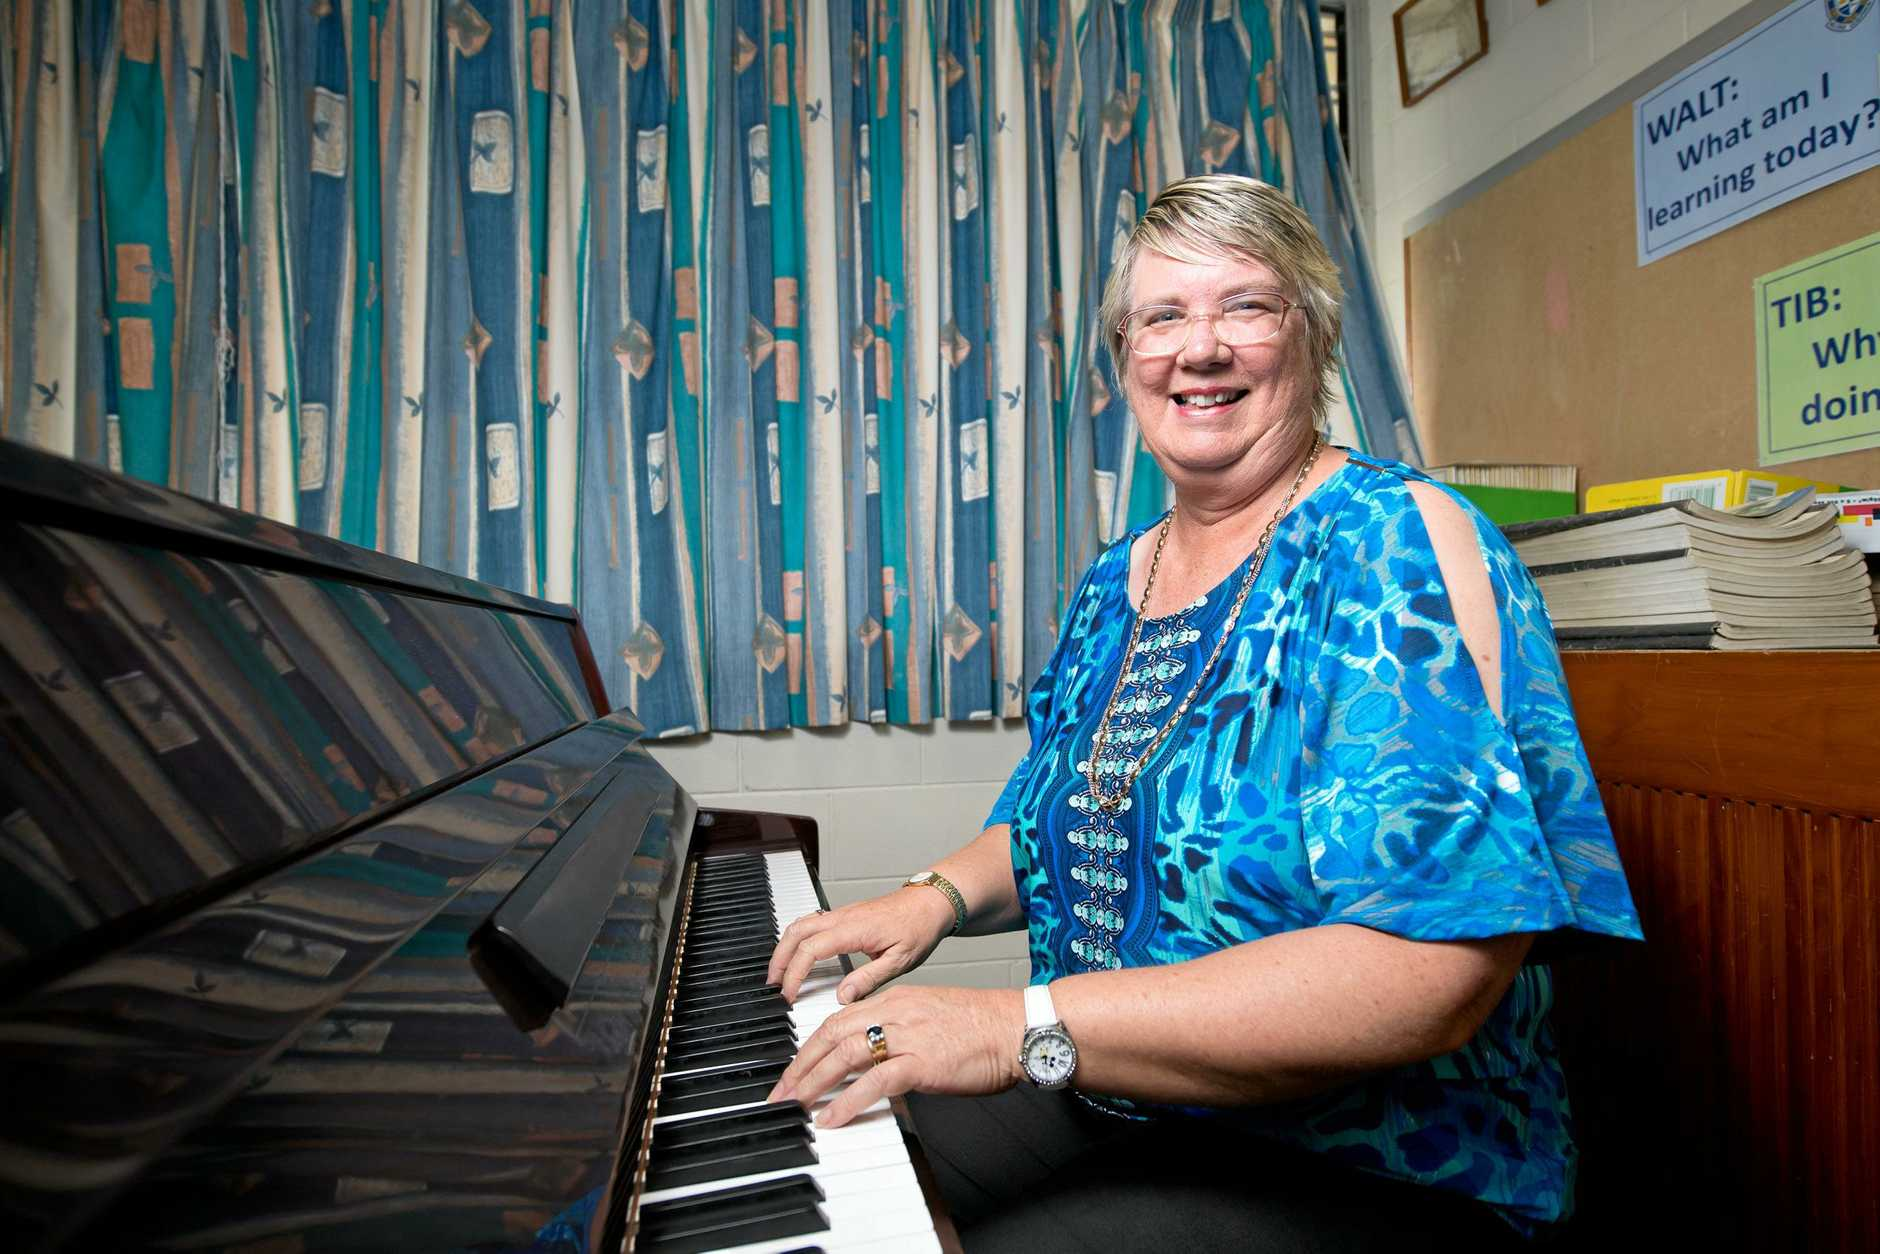 Kathryn George, who is the head of performing arts at Mackay North State High School can reveal today that she is receiving an Order of Australia Medal.